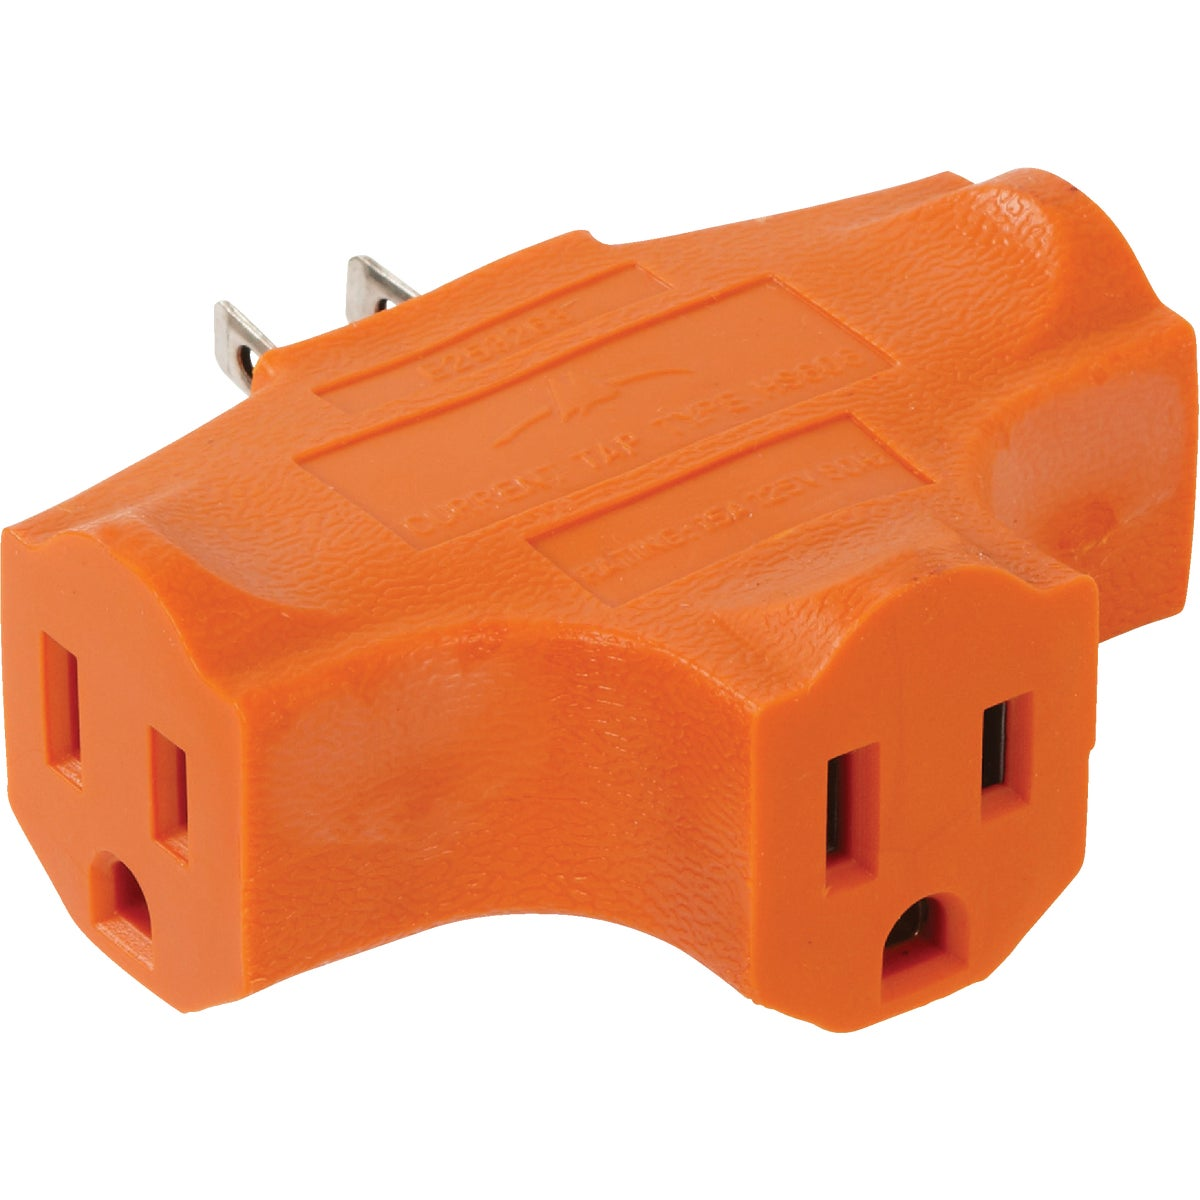 CARDED ORANGE CUBE TAP - ADAPTER-OR by Do it Best